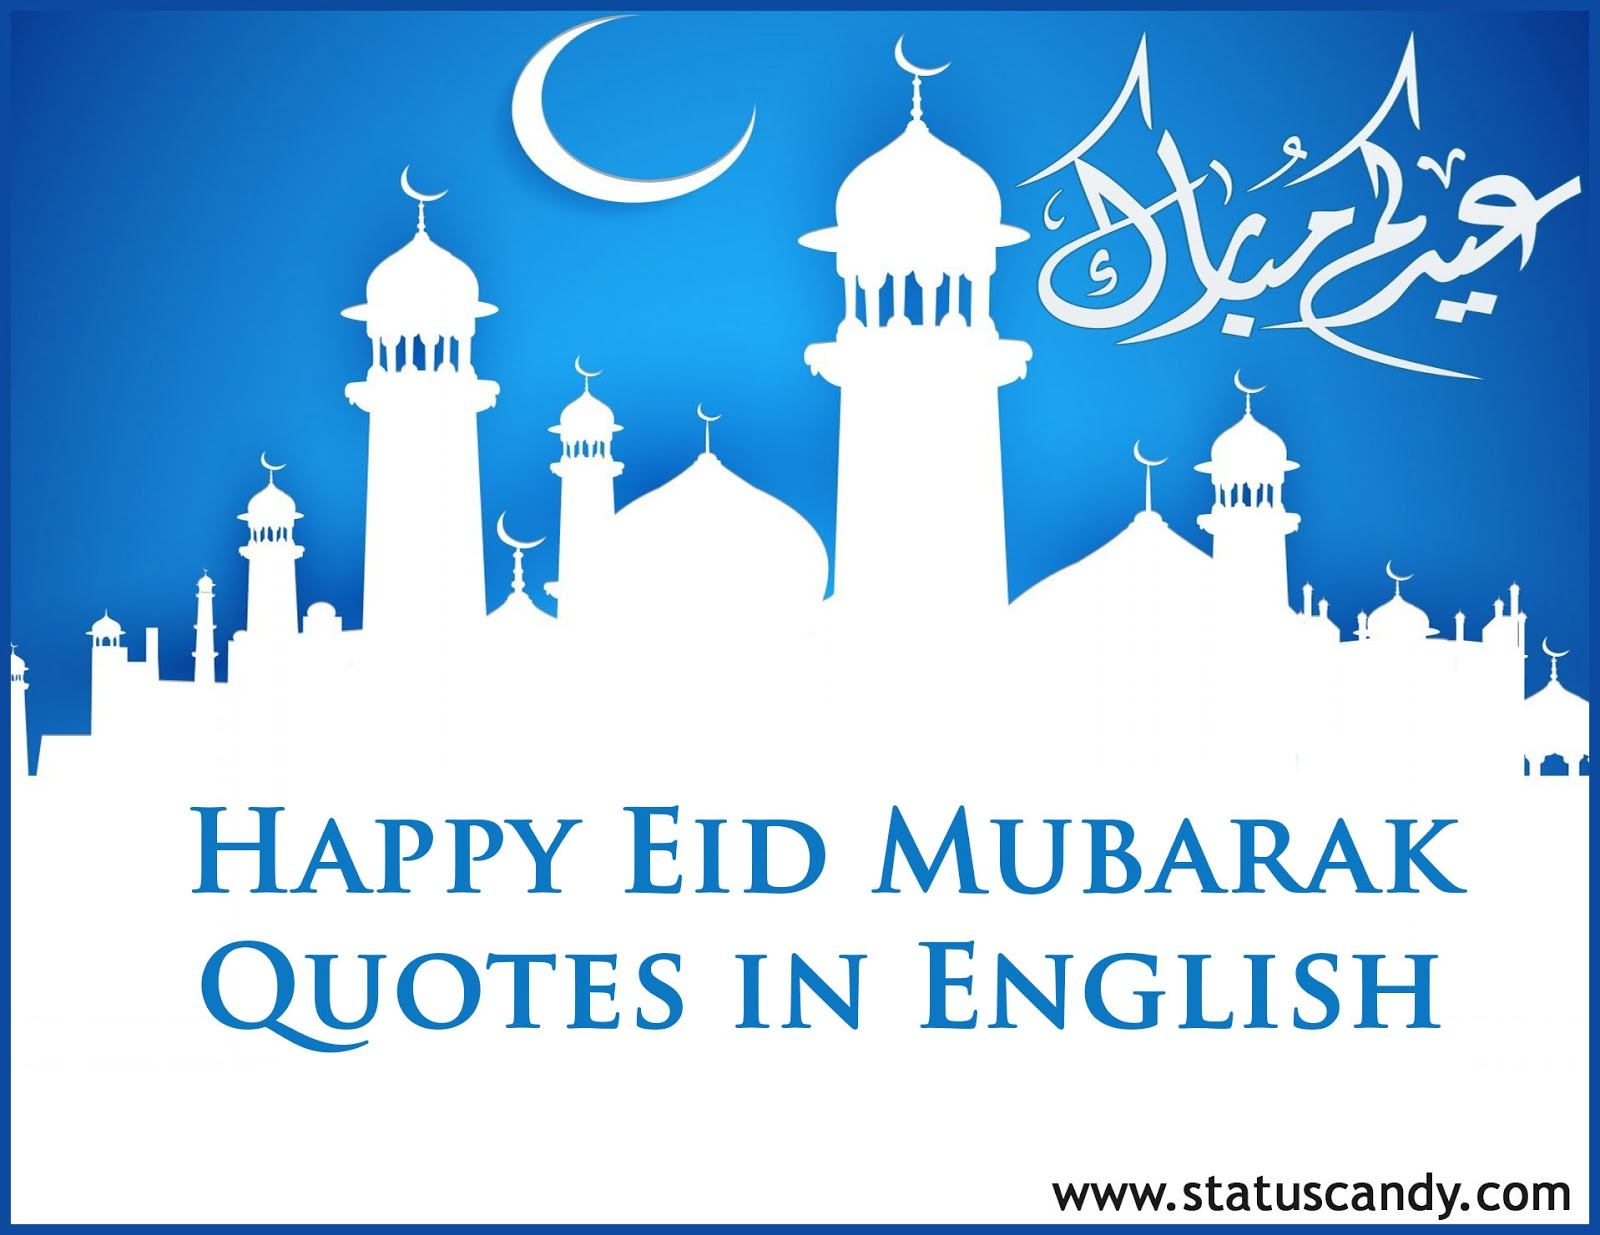 Top 15 happy eid mubarak quotes letest best picture status our todays post related to happy eid mubarak quotes happy eid mubarak wishes are specially for muslim ummah all over the world kristyandbryce Choice Image